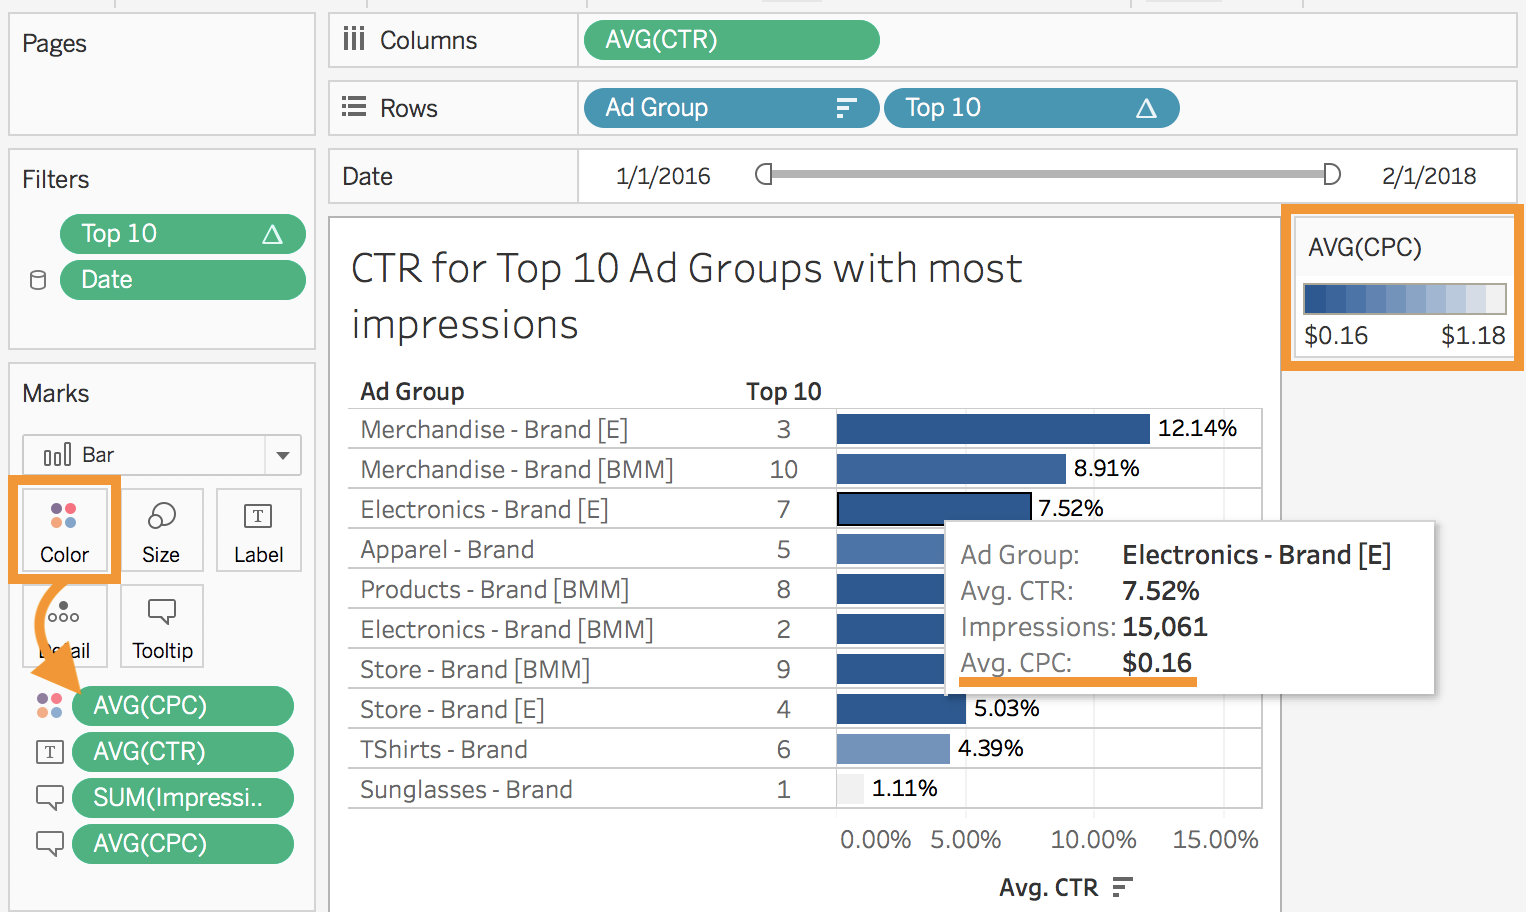 CTR and CPC for Top 10 Ad Groups with most impressions